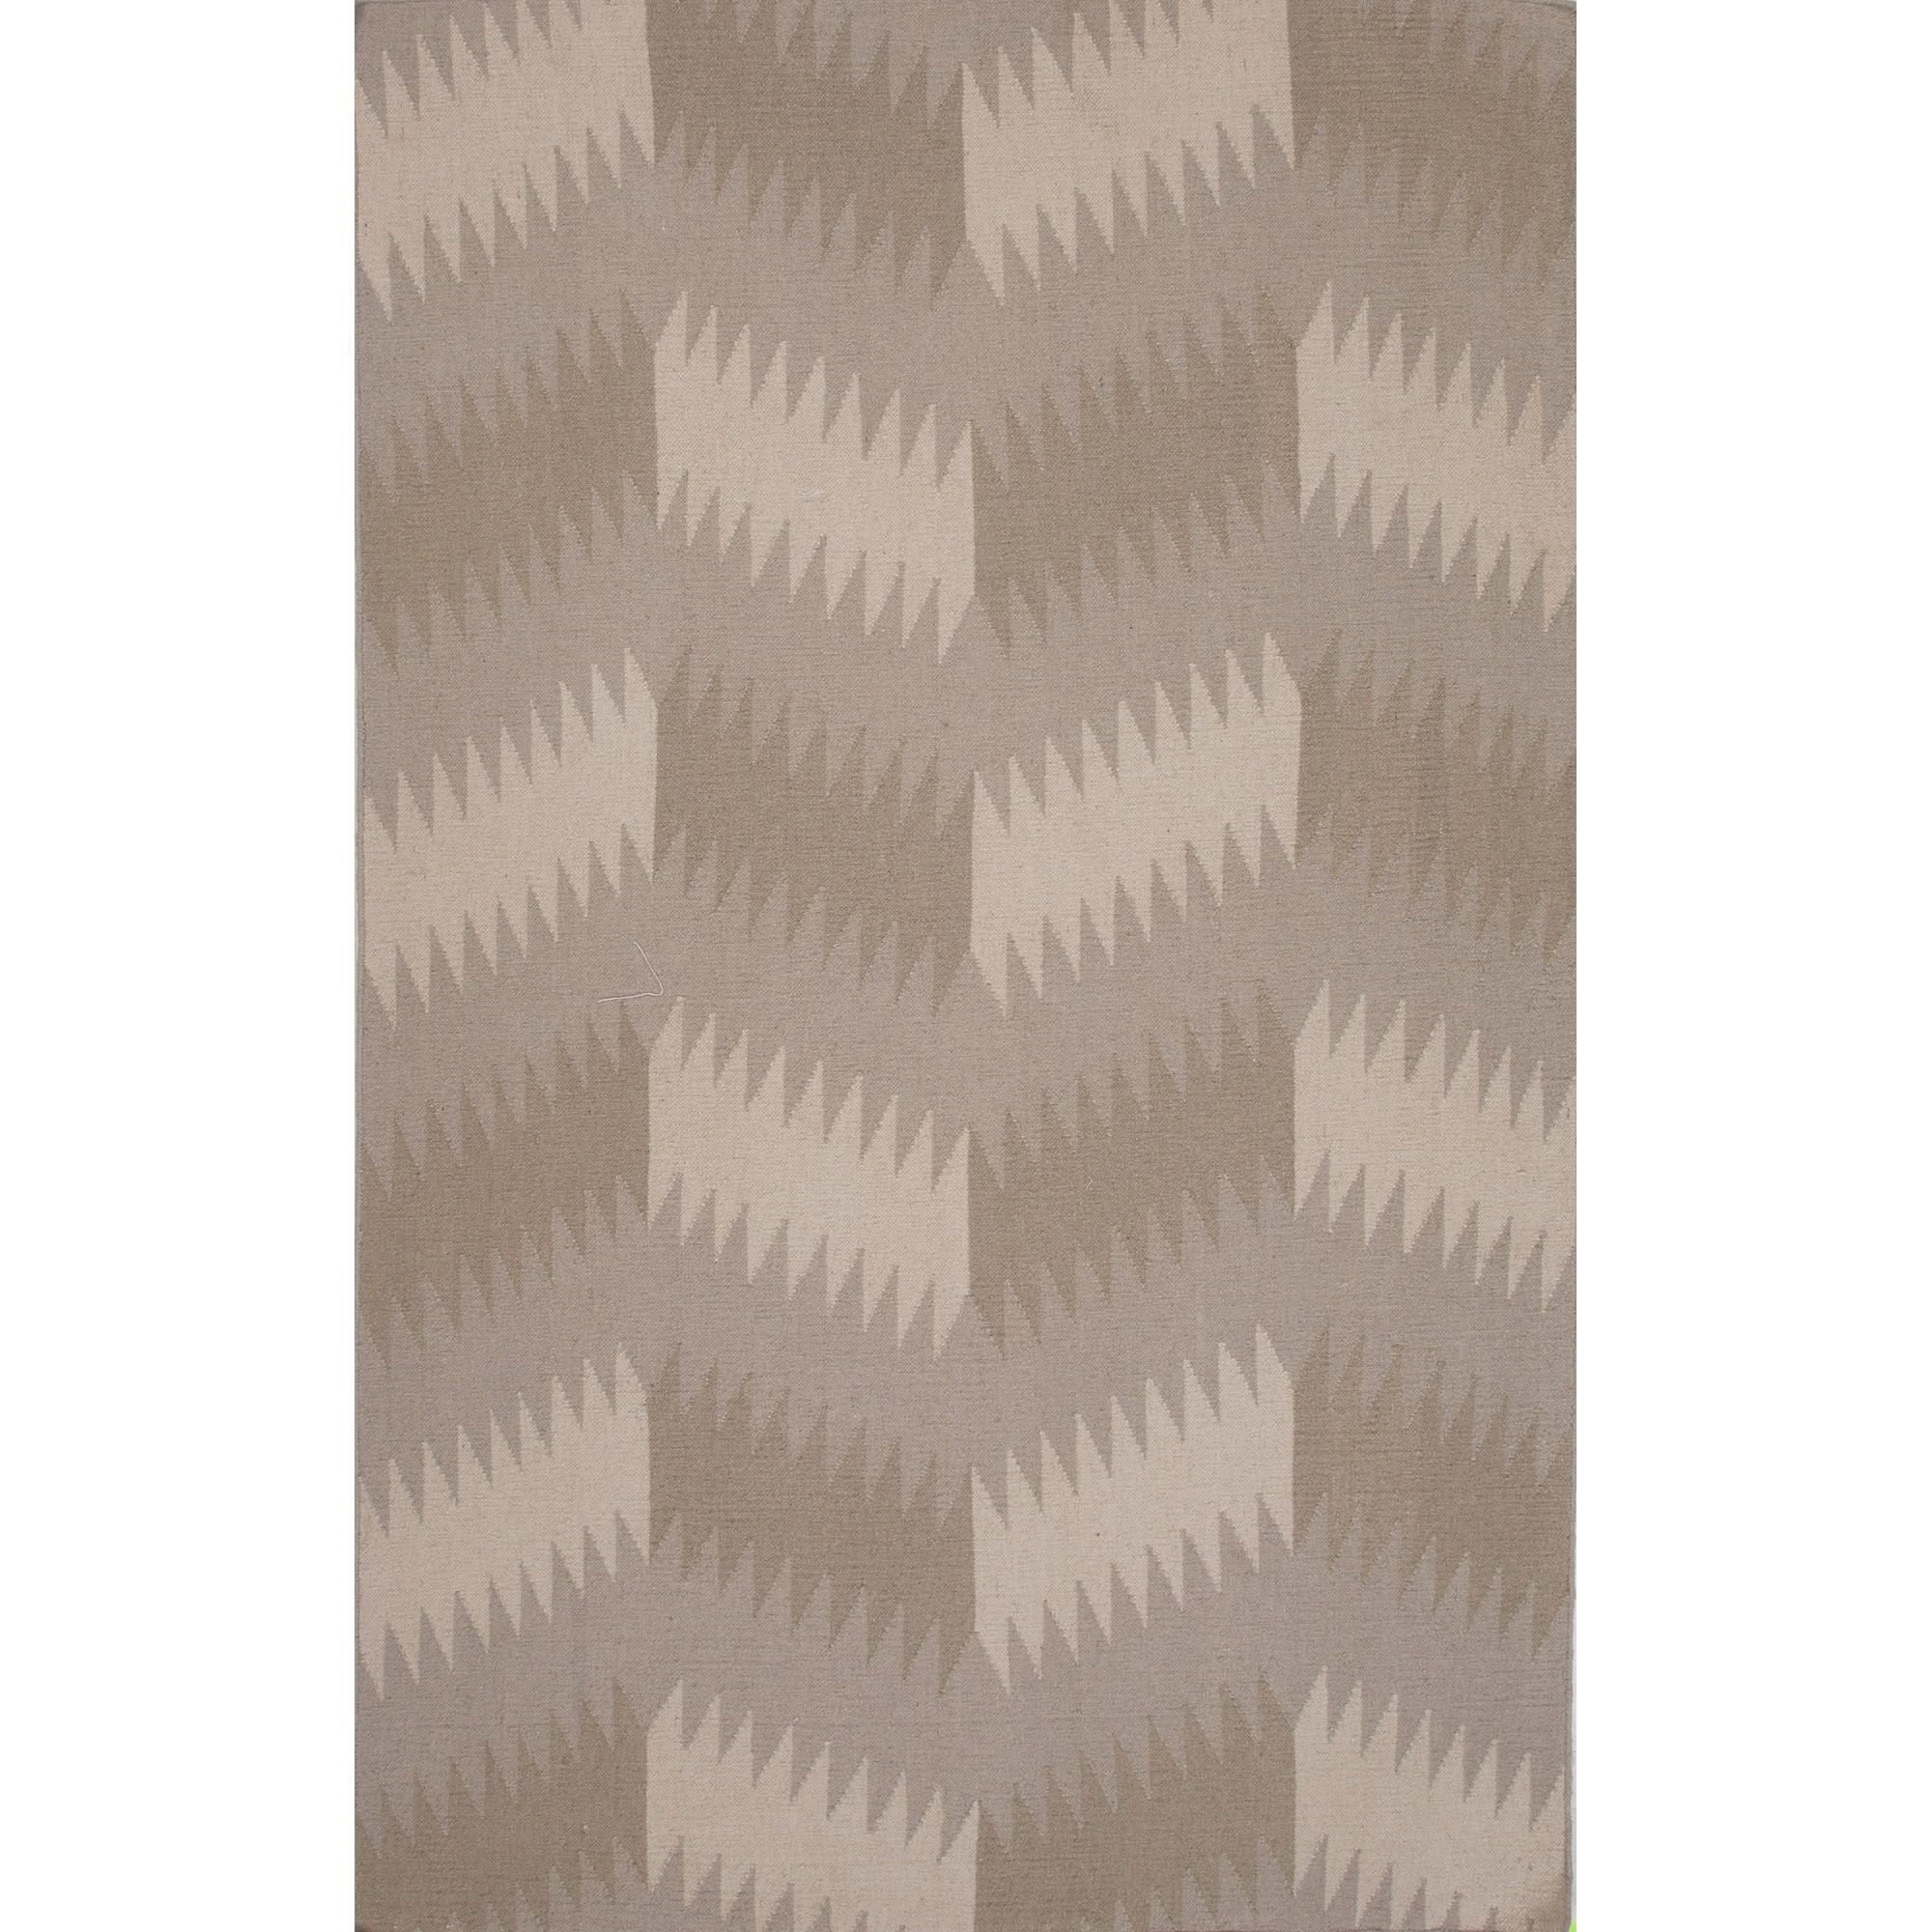 Eilerman Flat Weave Wool Tan Area Rug Rug Size: 5' x 8'